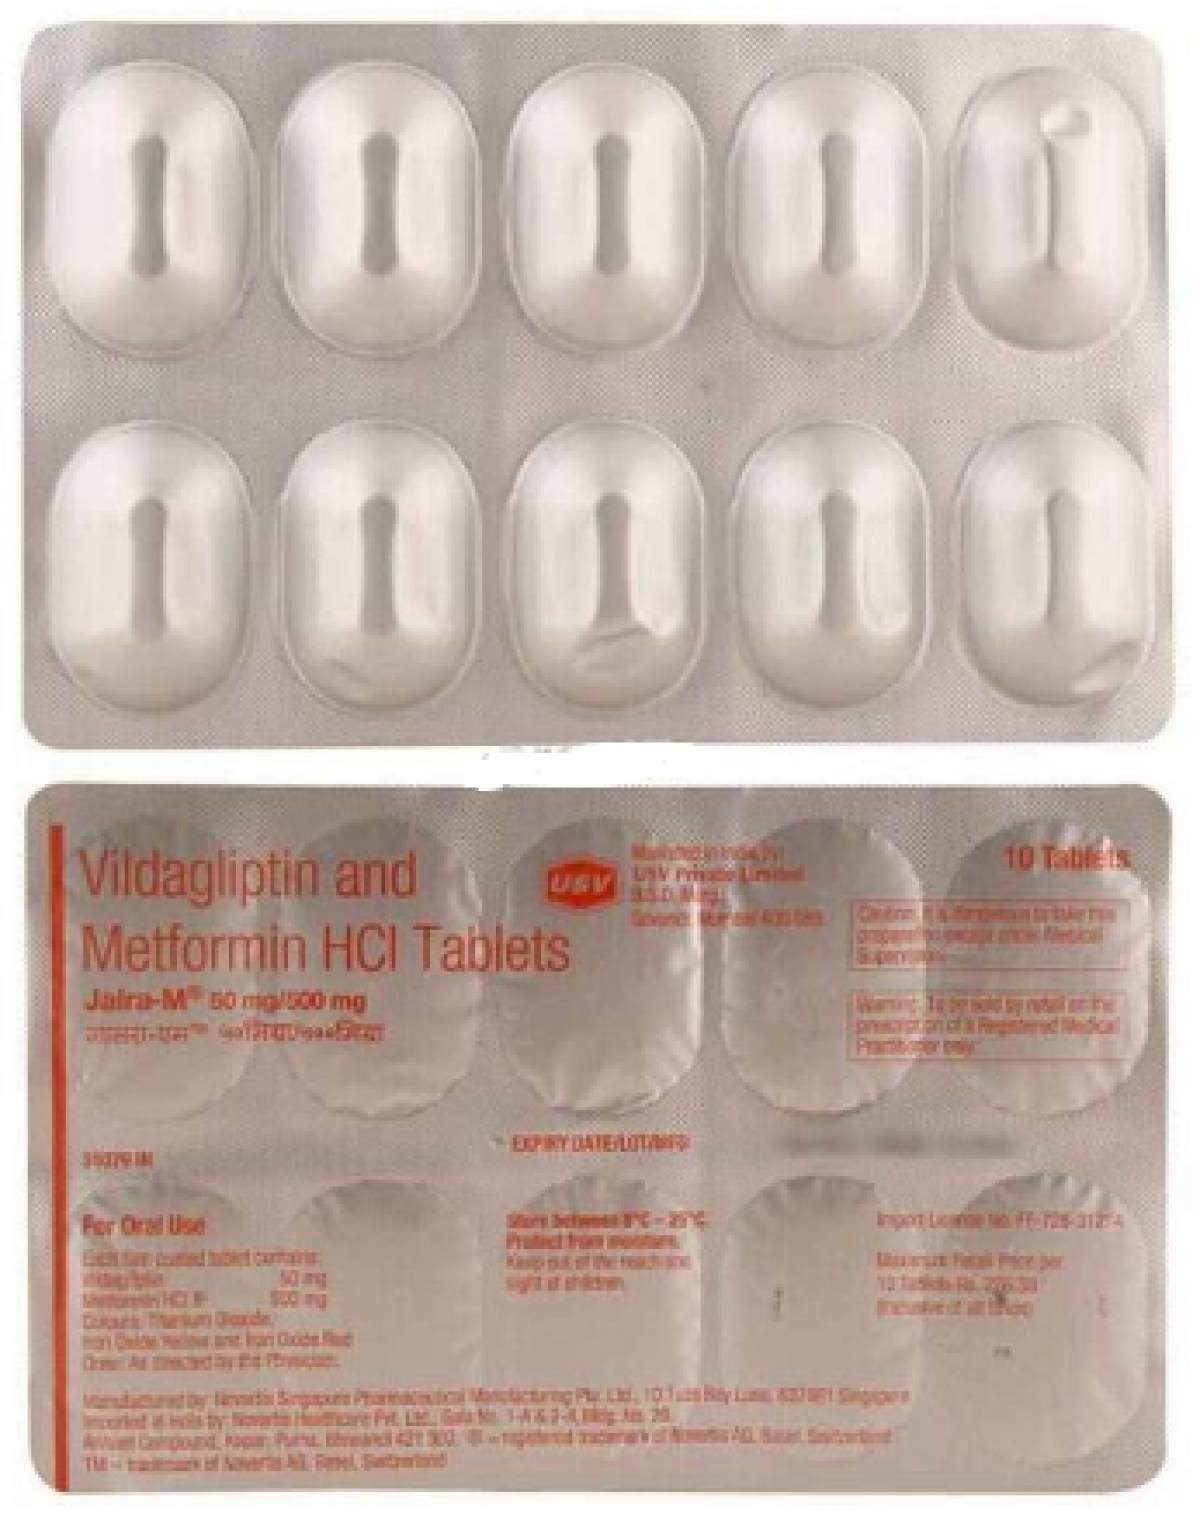 Jalra-M 50mg/500mg Tablet